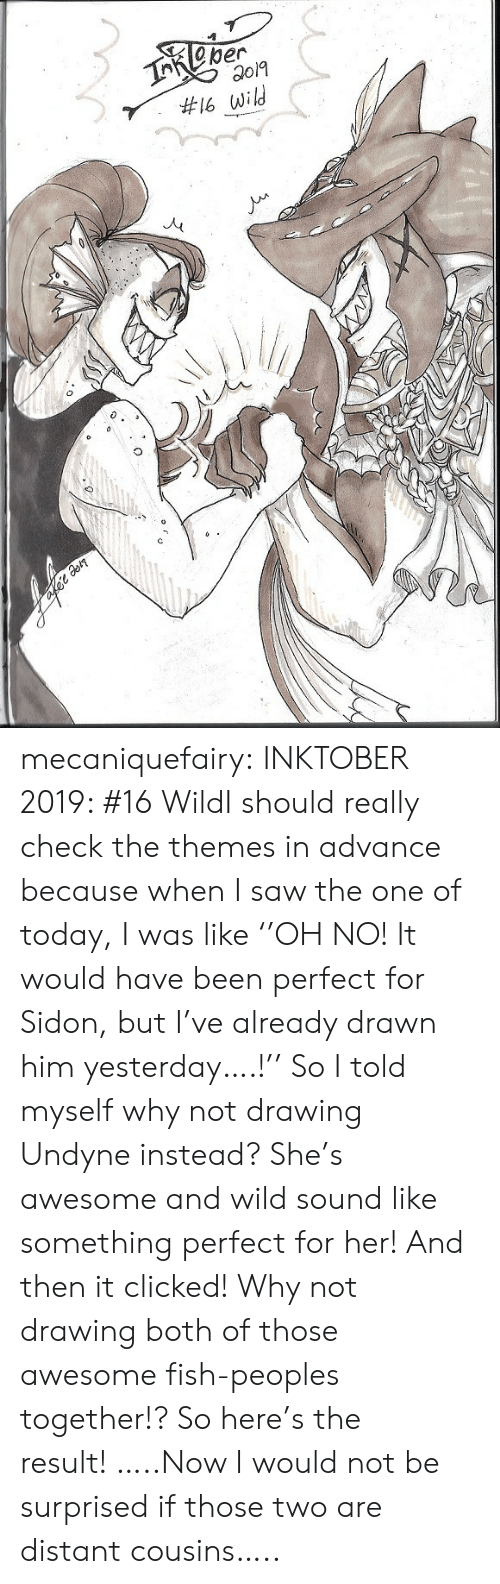 cousins: TReper  #16 wild mecaniquefairy:  INKTOBER 2019: #16 WildI should really check the themes in advance because when I saw the one of today, I was like ''OH NO! It would have been perfect for Sidon, but I've already drawn him yesterday….!'' So I told myself why not drawing Undyne instead? She's awesome and wild sound like something perfect for her! And then it clicked! Why not drawing both of those awesome fish-peoples together!? So here's the result!…..Now I would not be surprised if those two are distant cousins…..